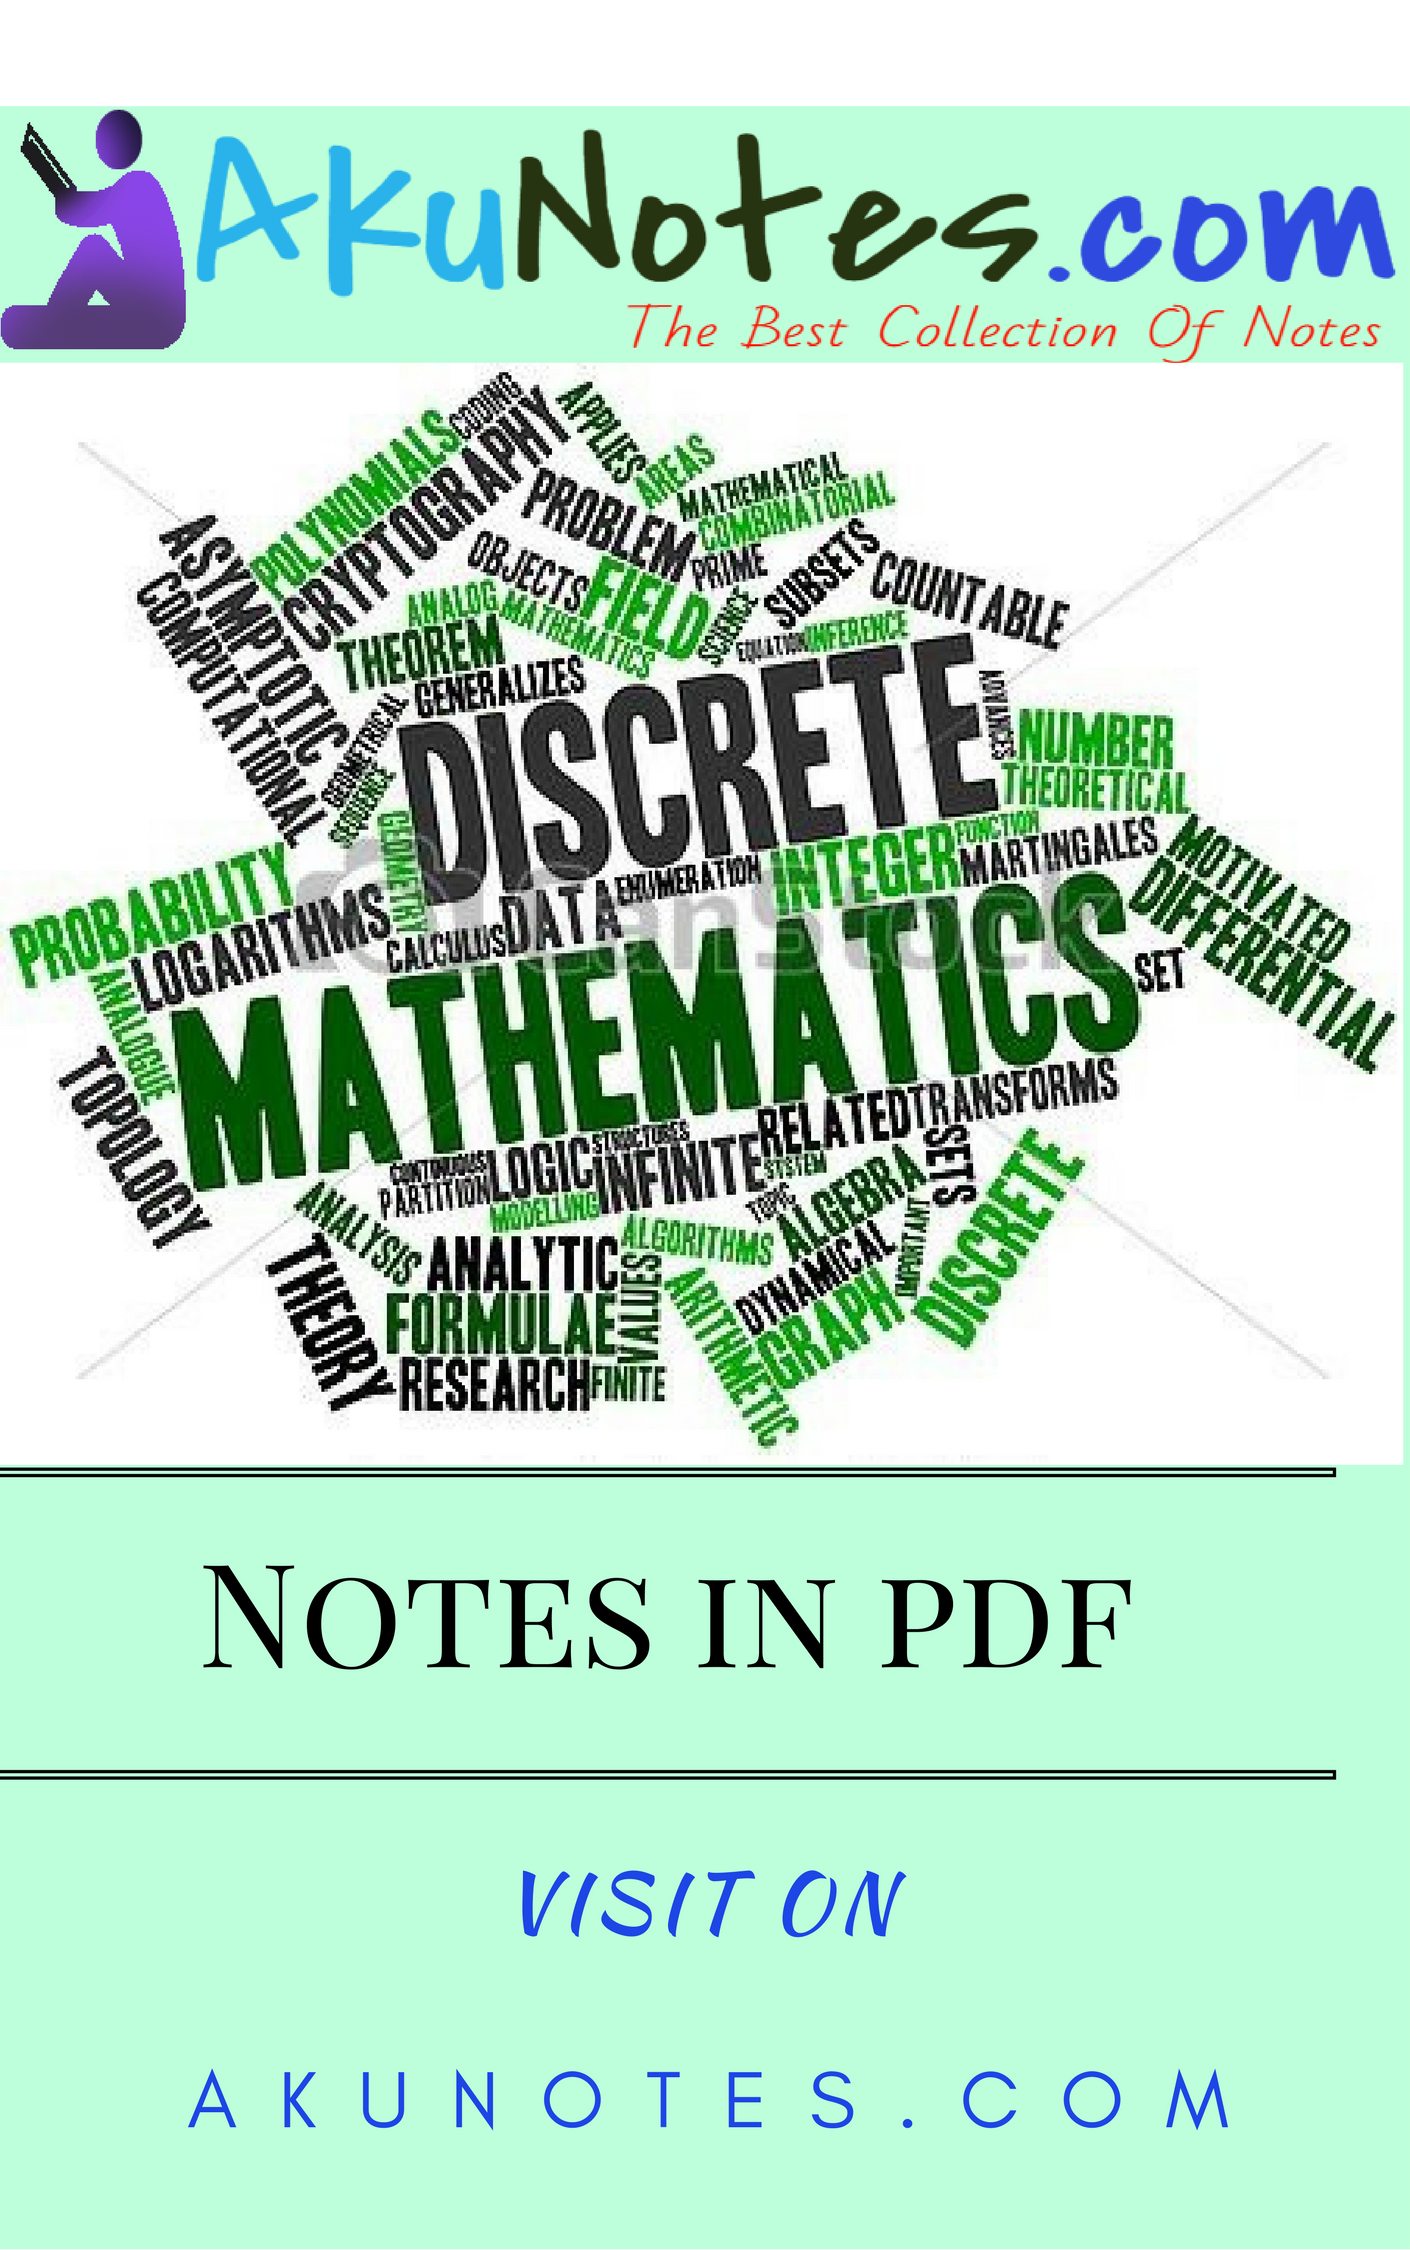 discrete mathematics Animated, interactive introduction to discrete math, as a foundation to  programming logic includes hundreds of exercises and auto-graded activities.